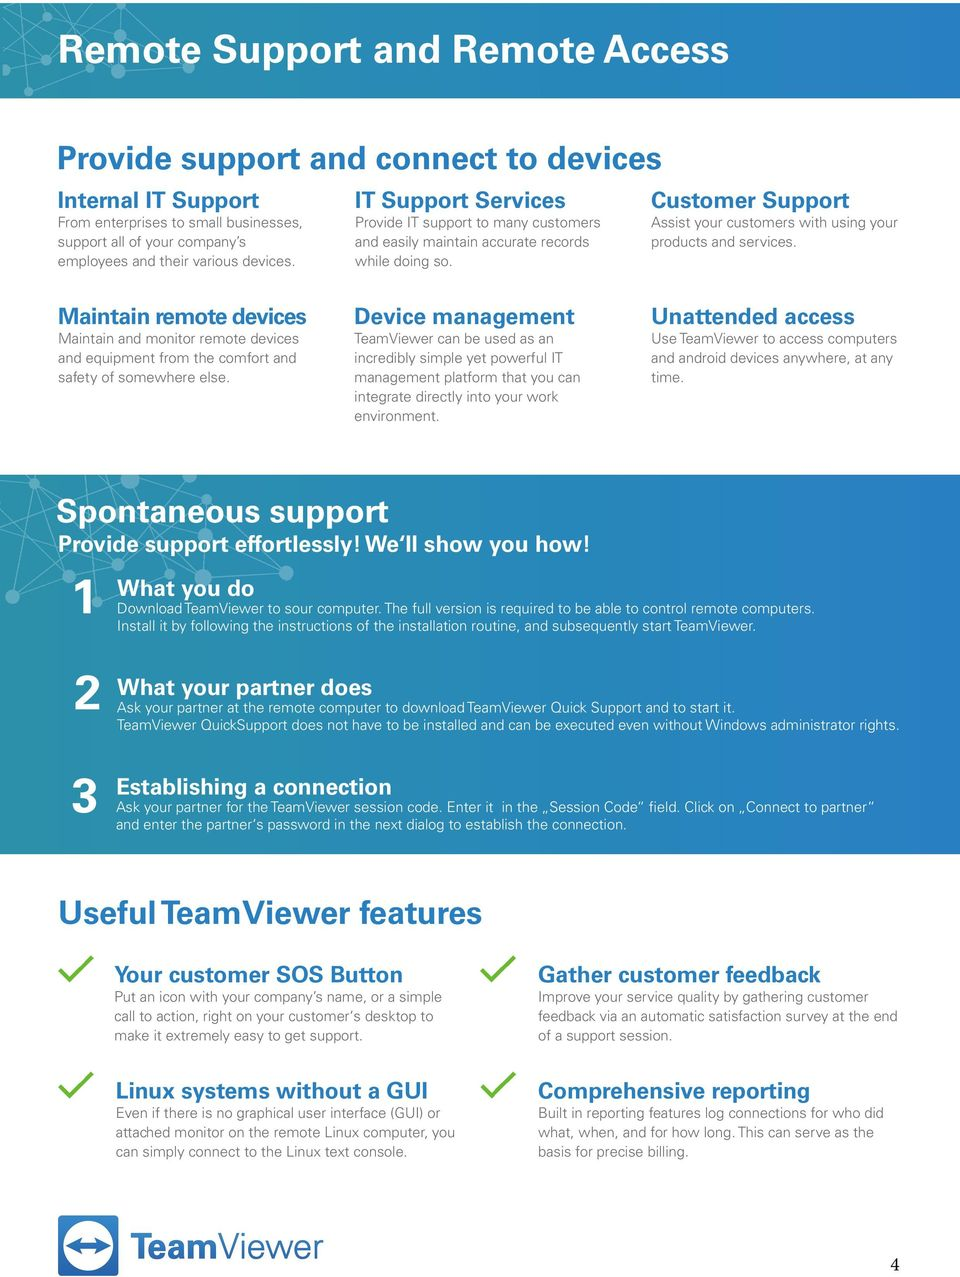 Remote support, remote access, and online meeting software